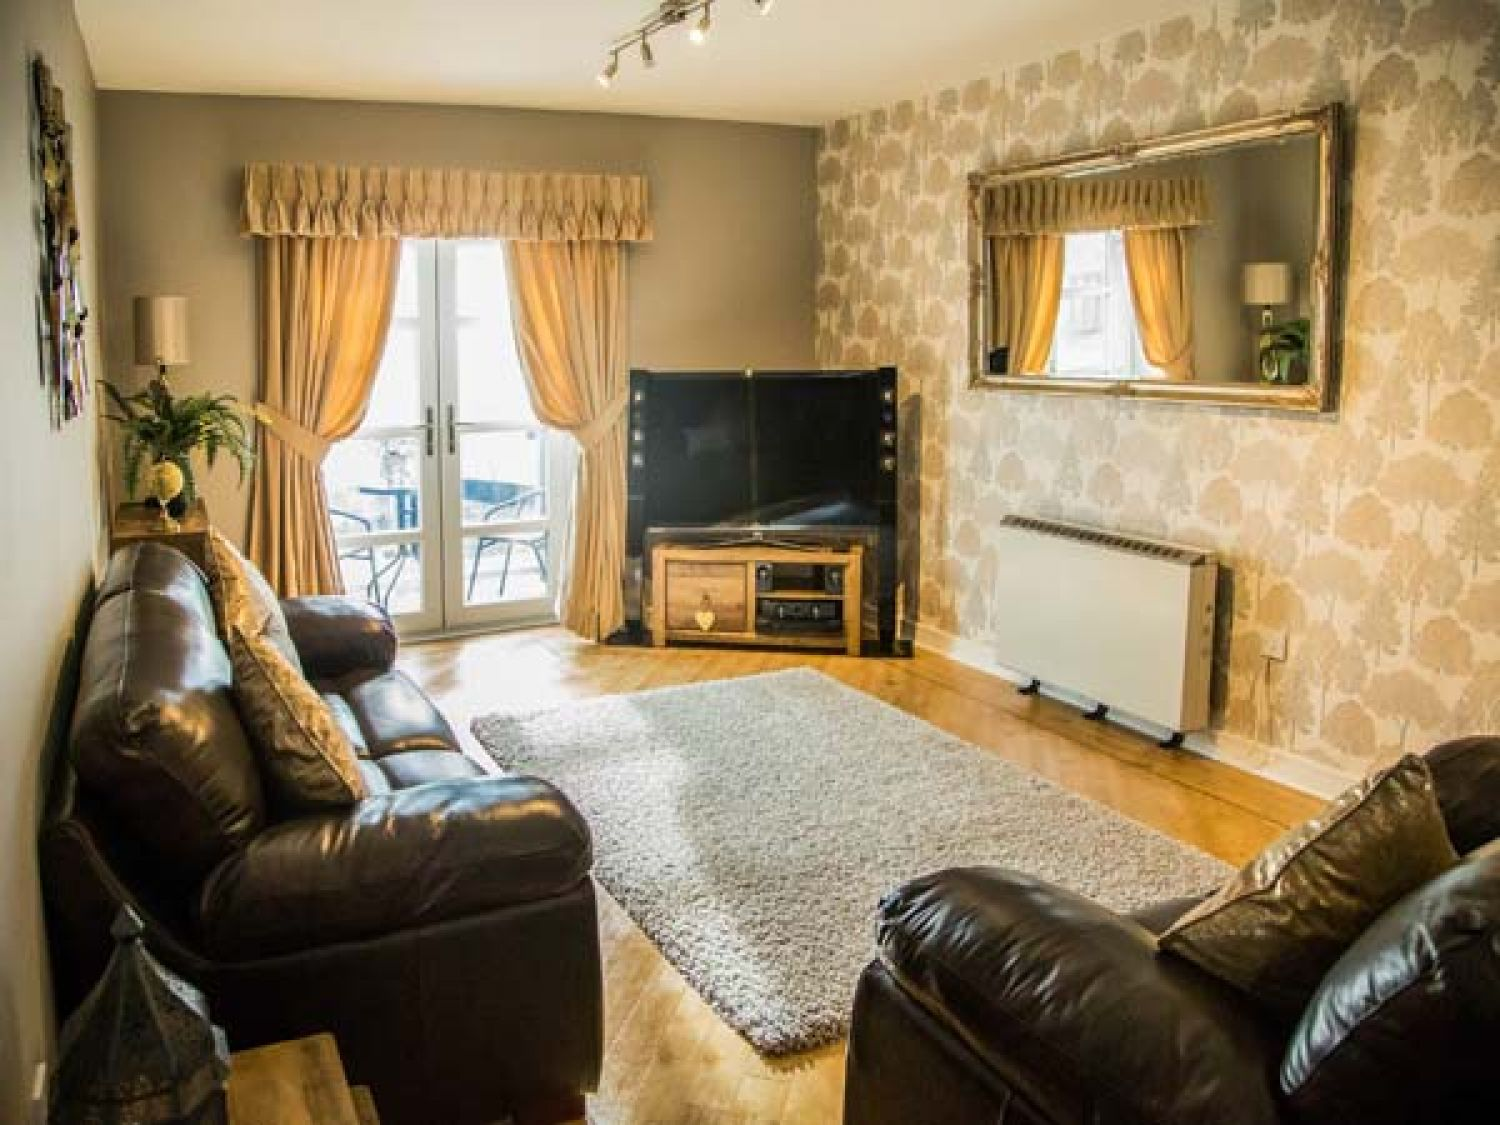 7 Mariners Point - Whitby & North Yorkshire - 935729 - photo 1